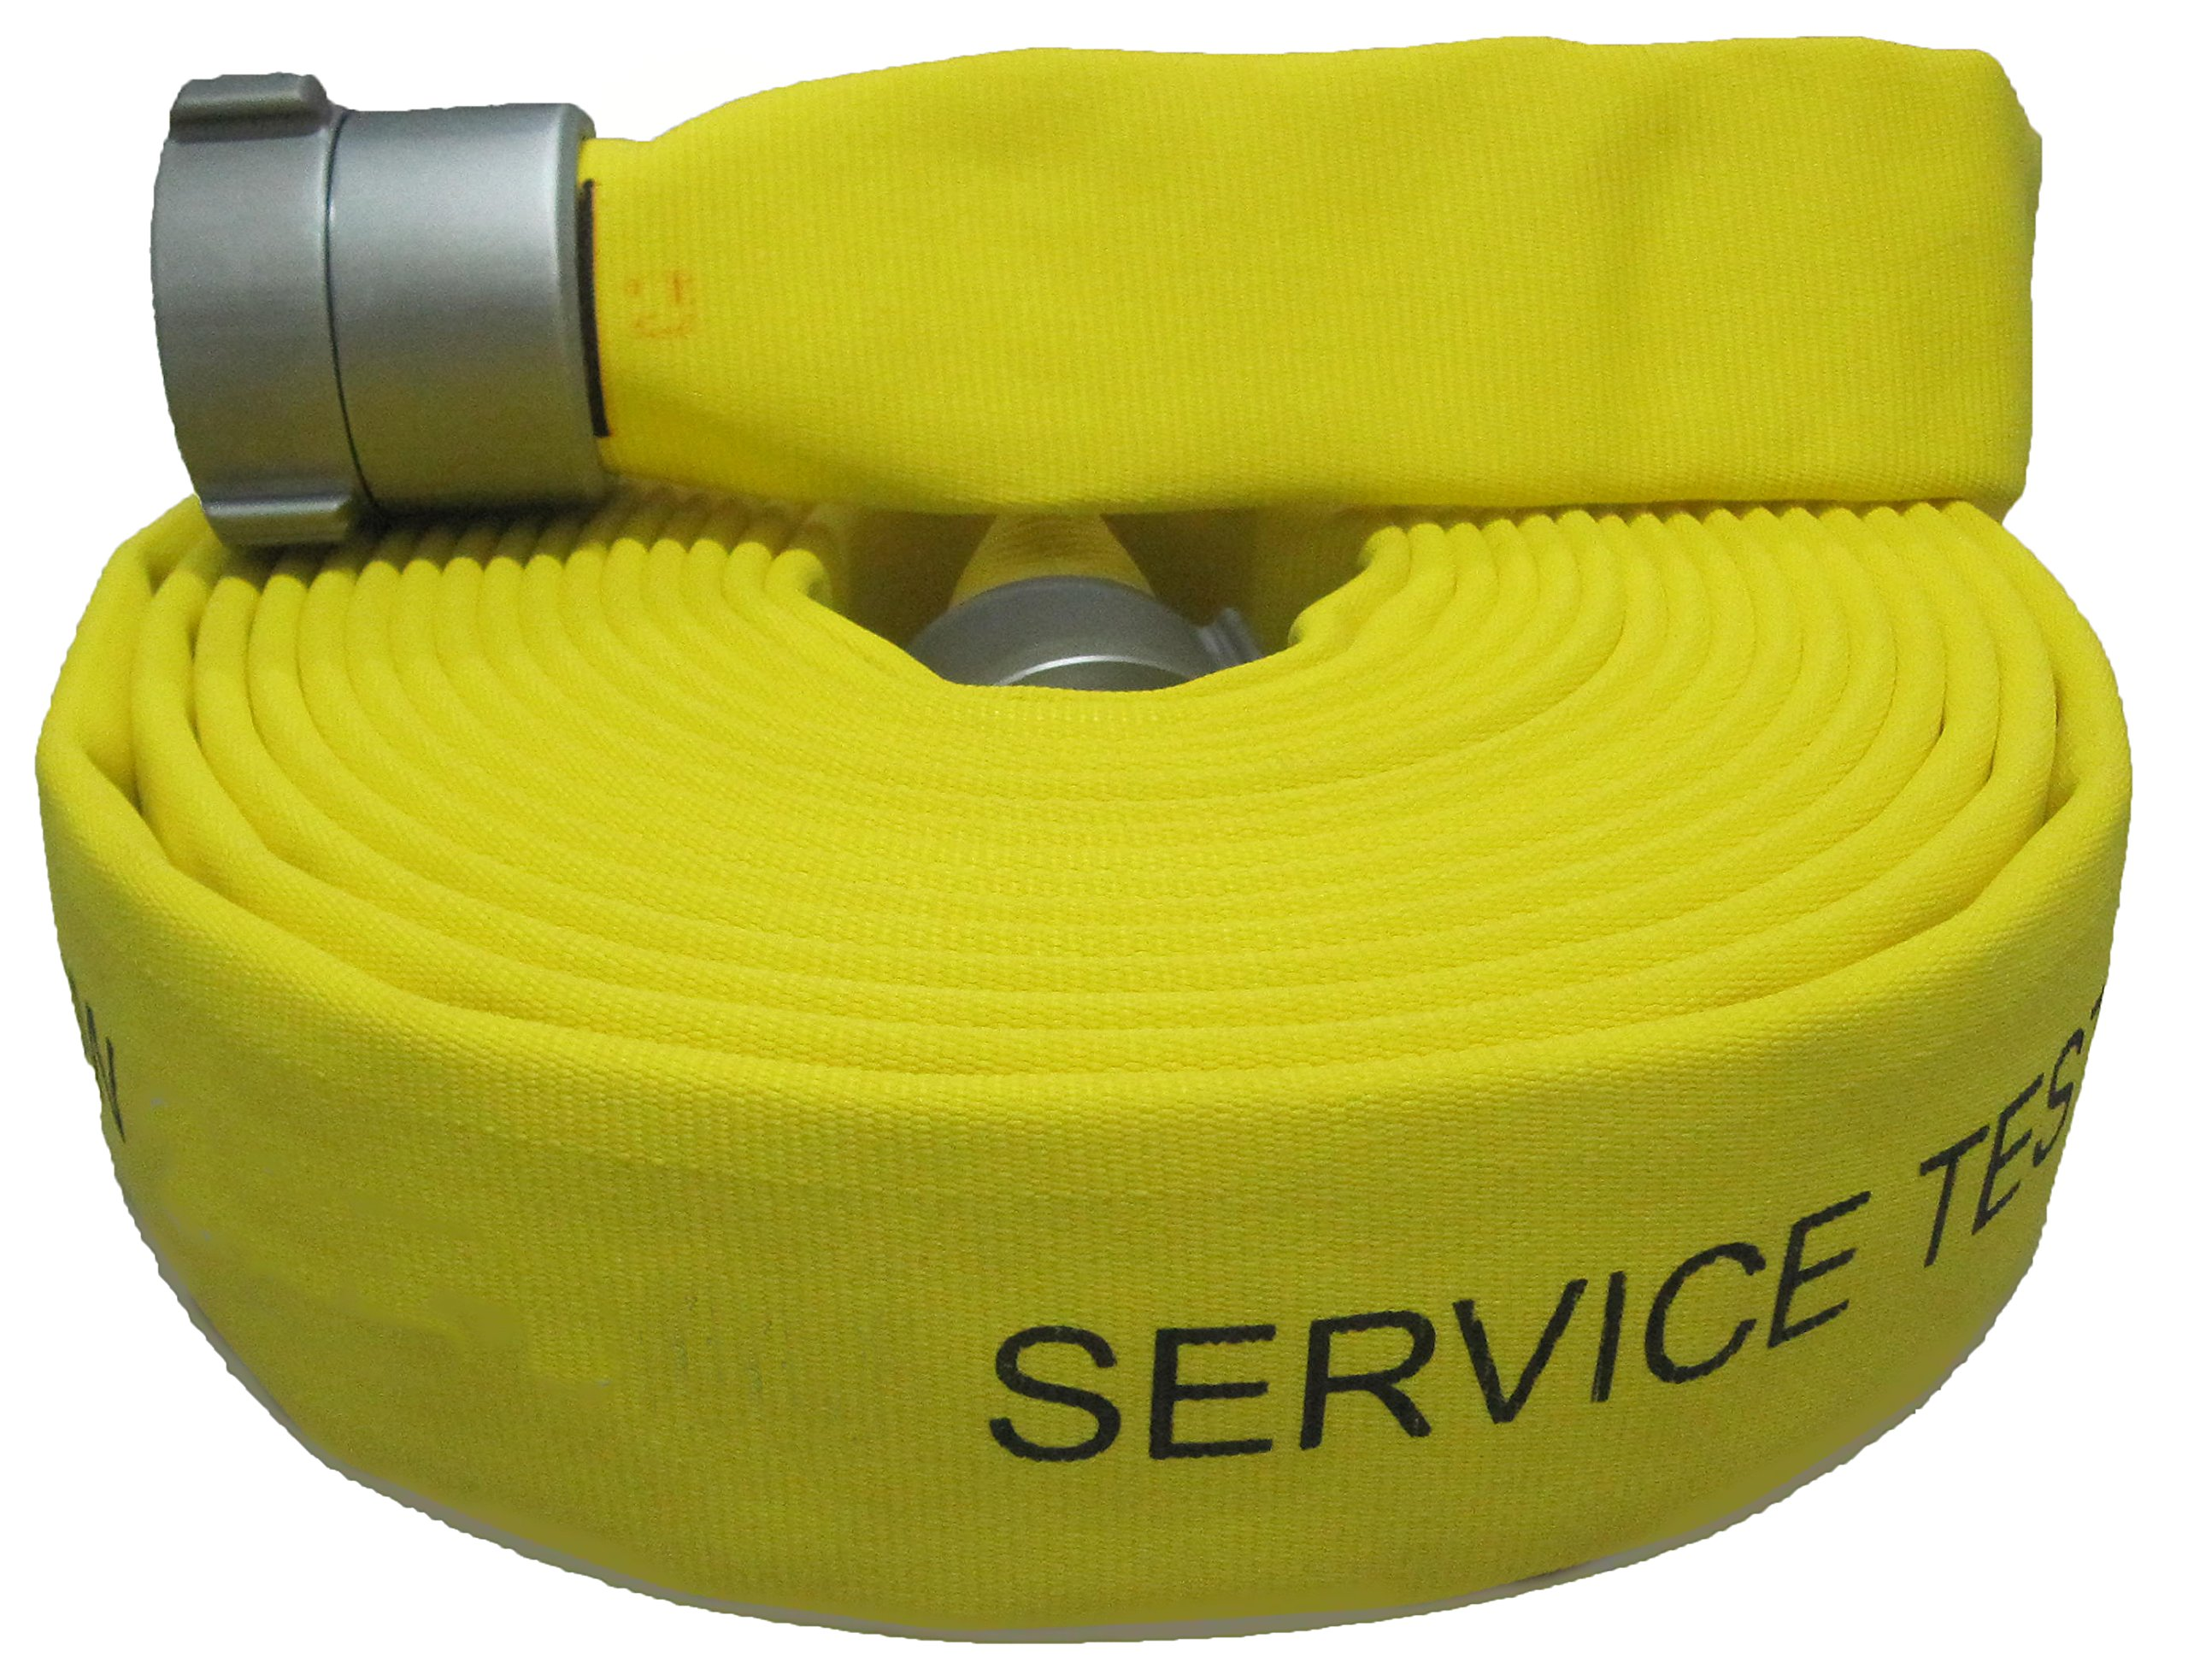 5Elem 017-0323-06015Elem FAS Series Single Jacket Fire Hose, 50' Length, 2'' ID, 2.38'' OD, 650 psi, NST Male x Female Brass Connectors, Polyester/EPDM, Yellow